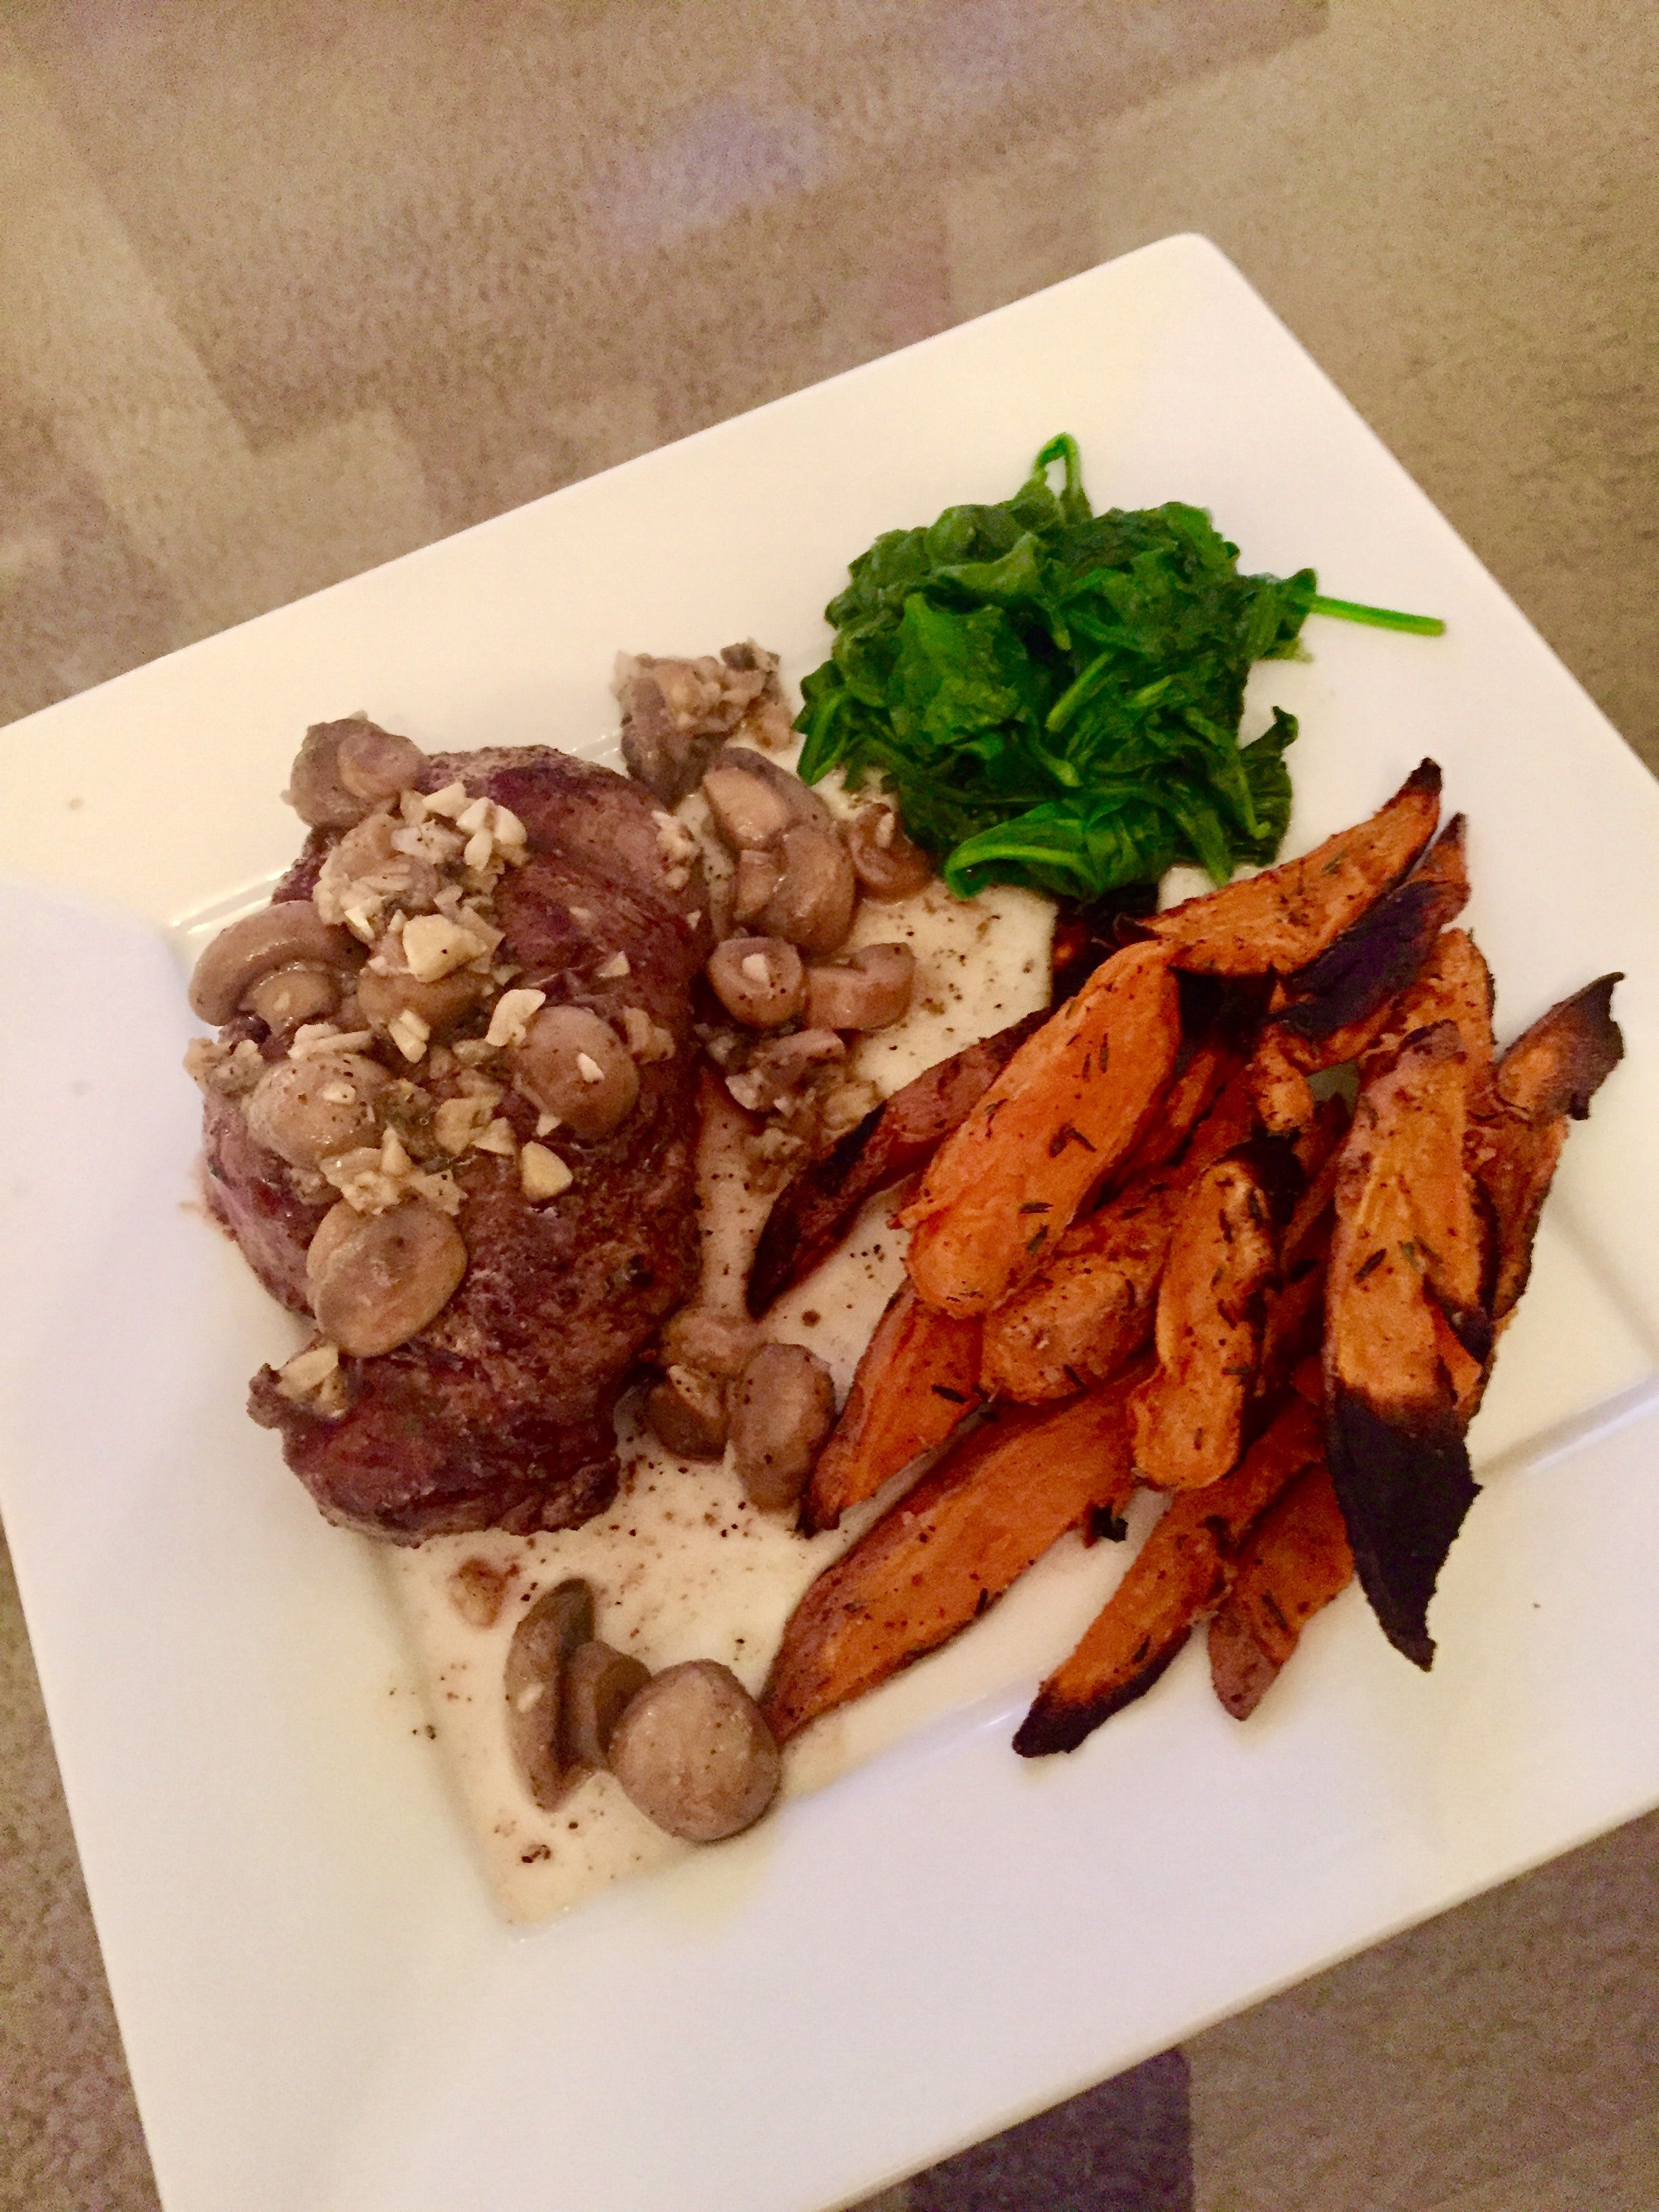 Steak with mushrooms, baked sweet potato fries and steamed spinach